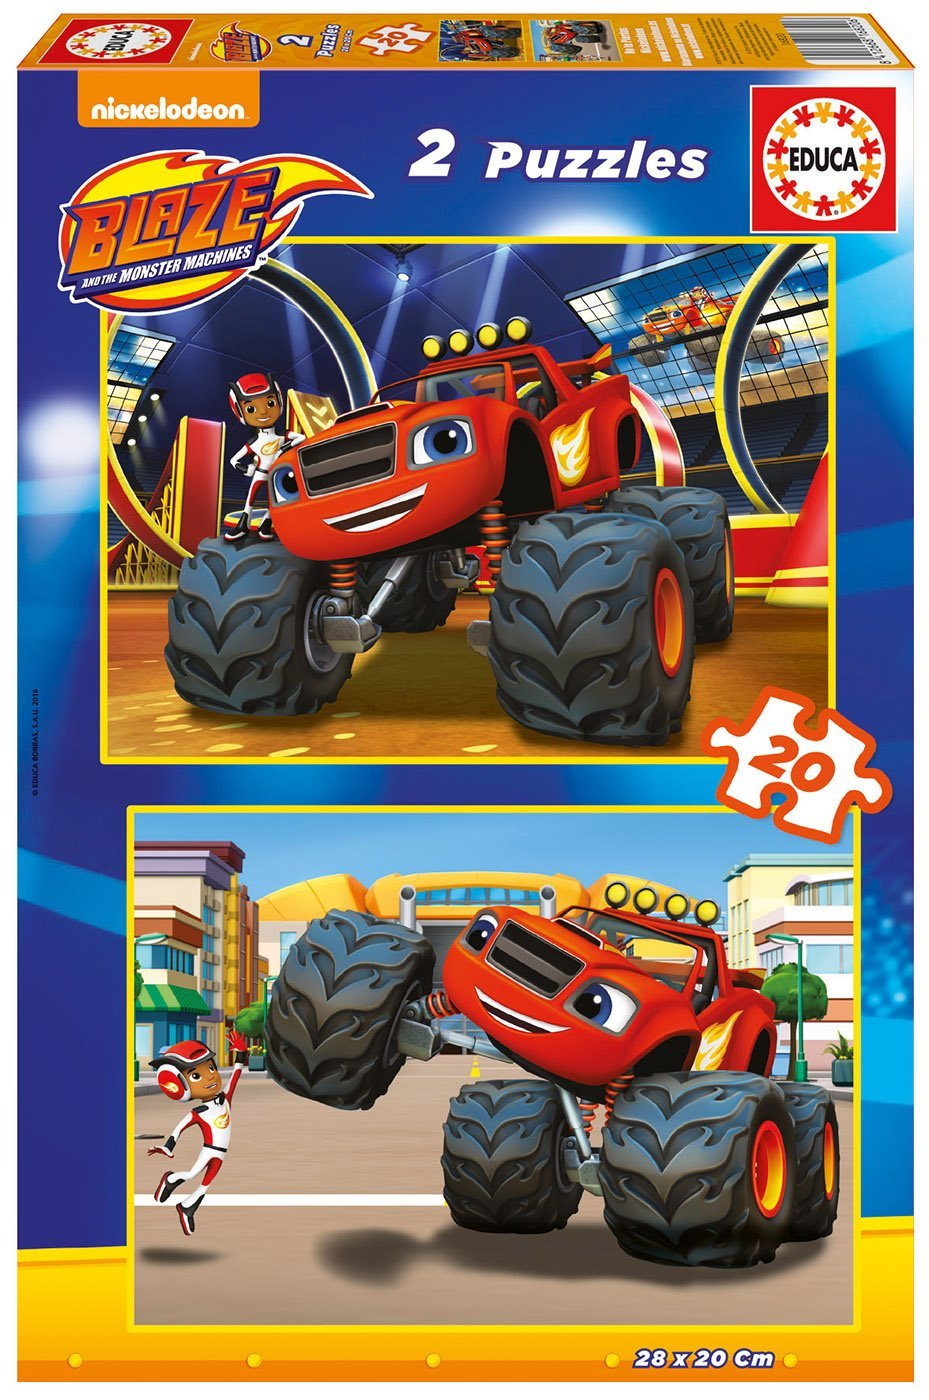 2 Puzzles - Blaze and The Monster Machines Educa